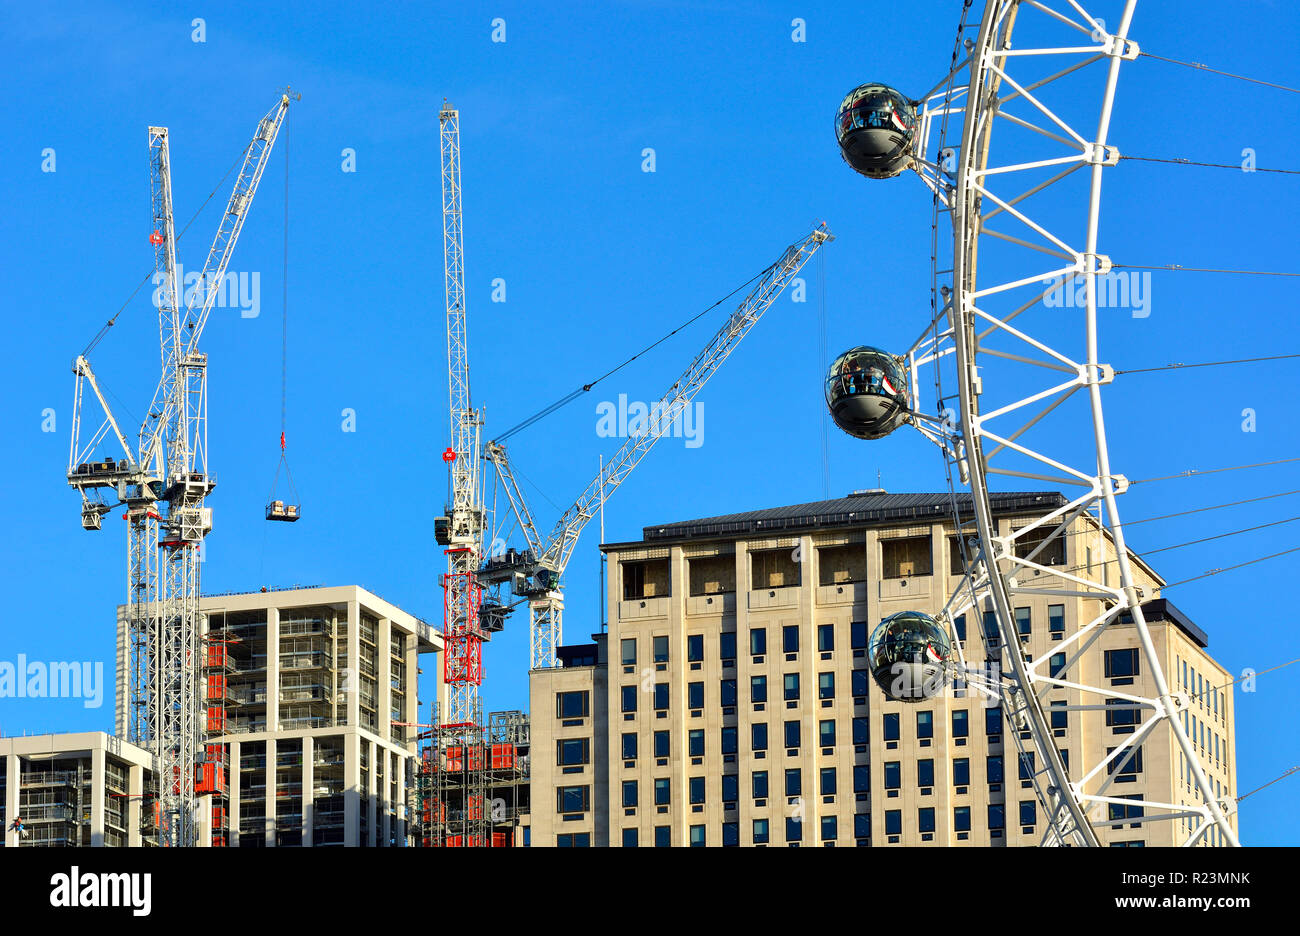 London Eye / Millennium Wheel, Shell Centre and construction cranes on the South Bank, London, England, UK. - Stock Image